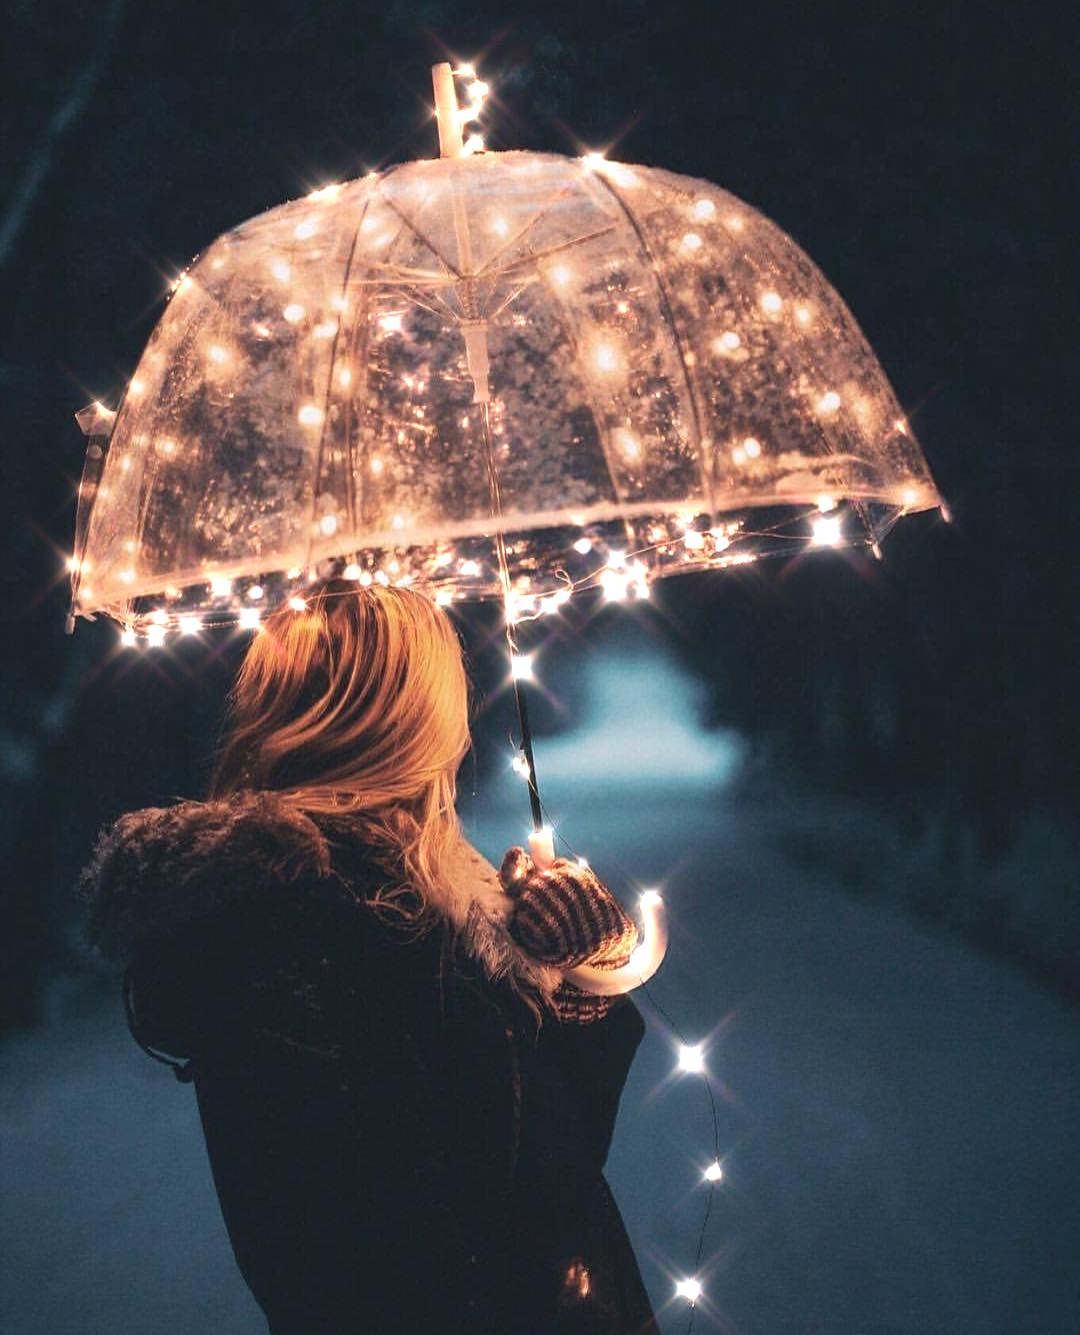 Woman holding umbrella with lights